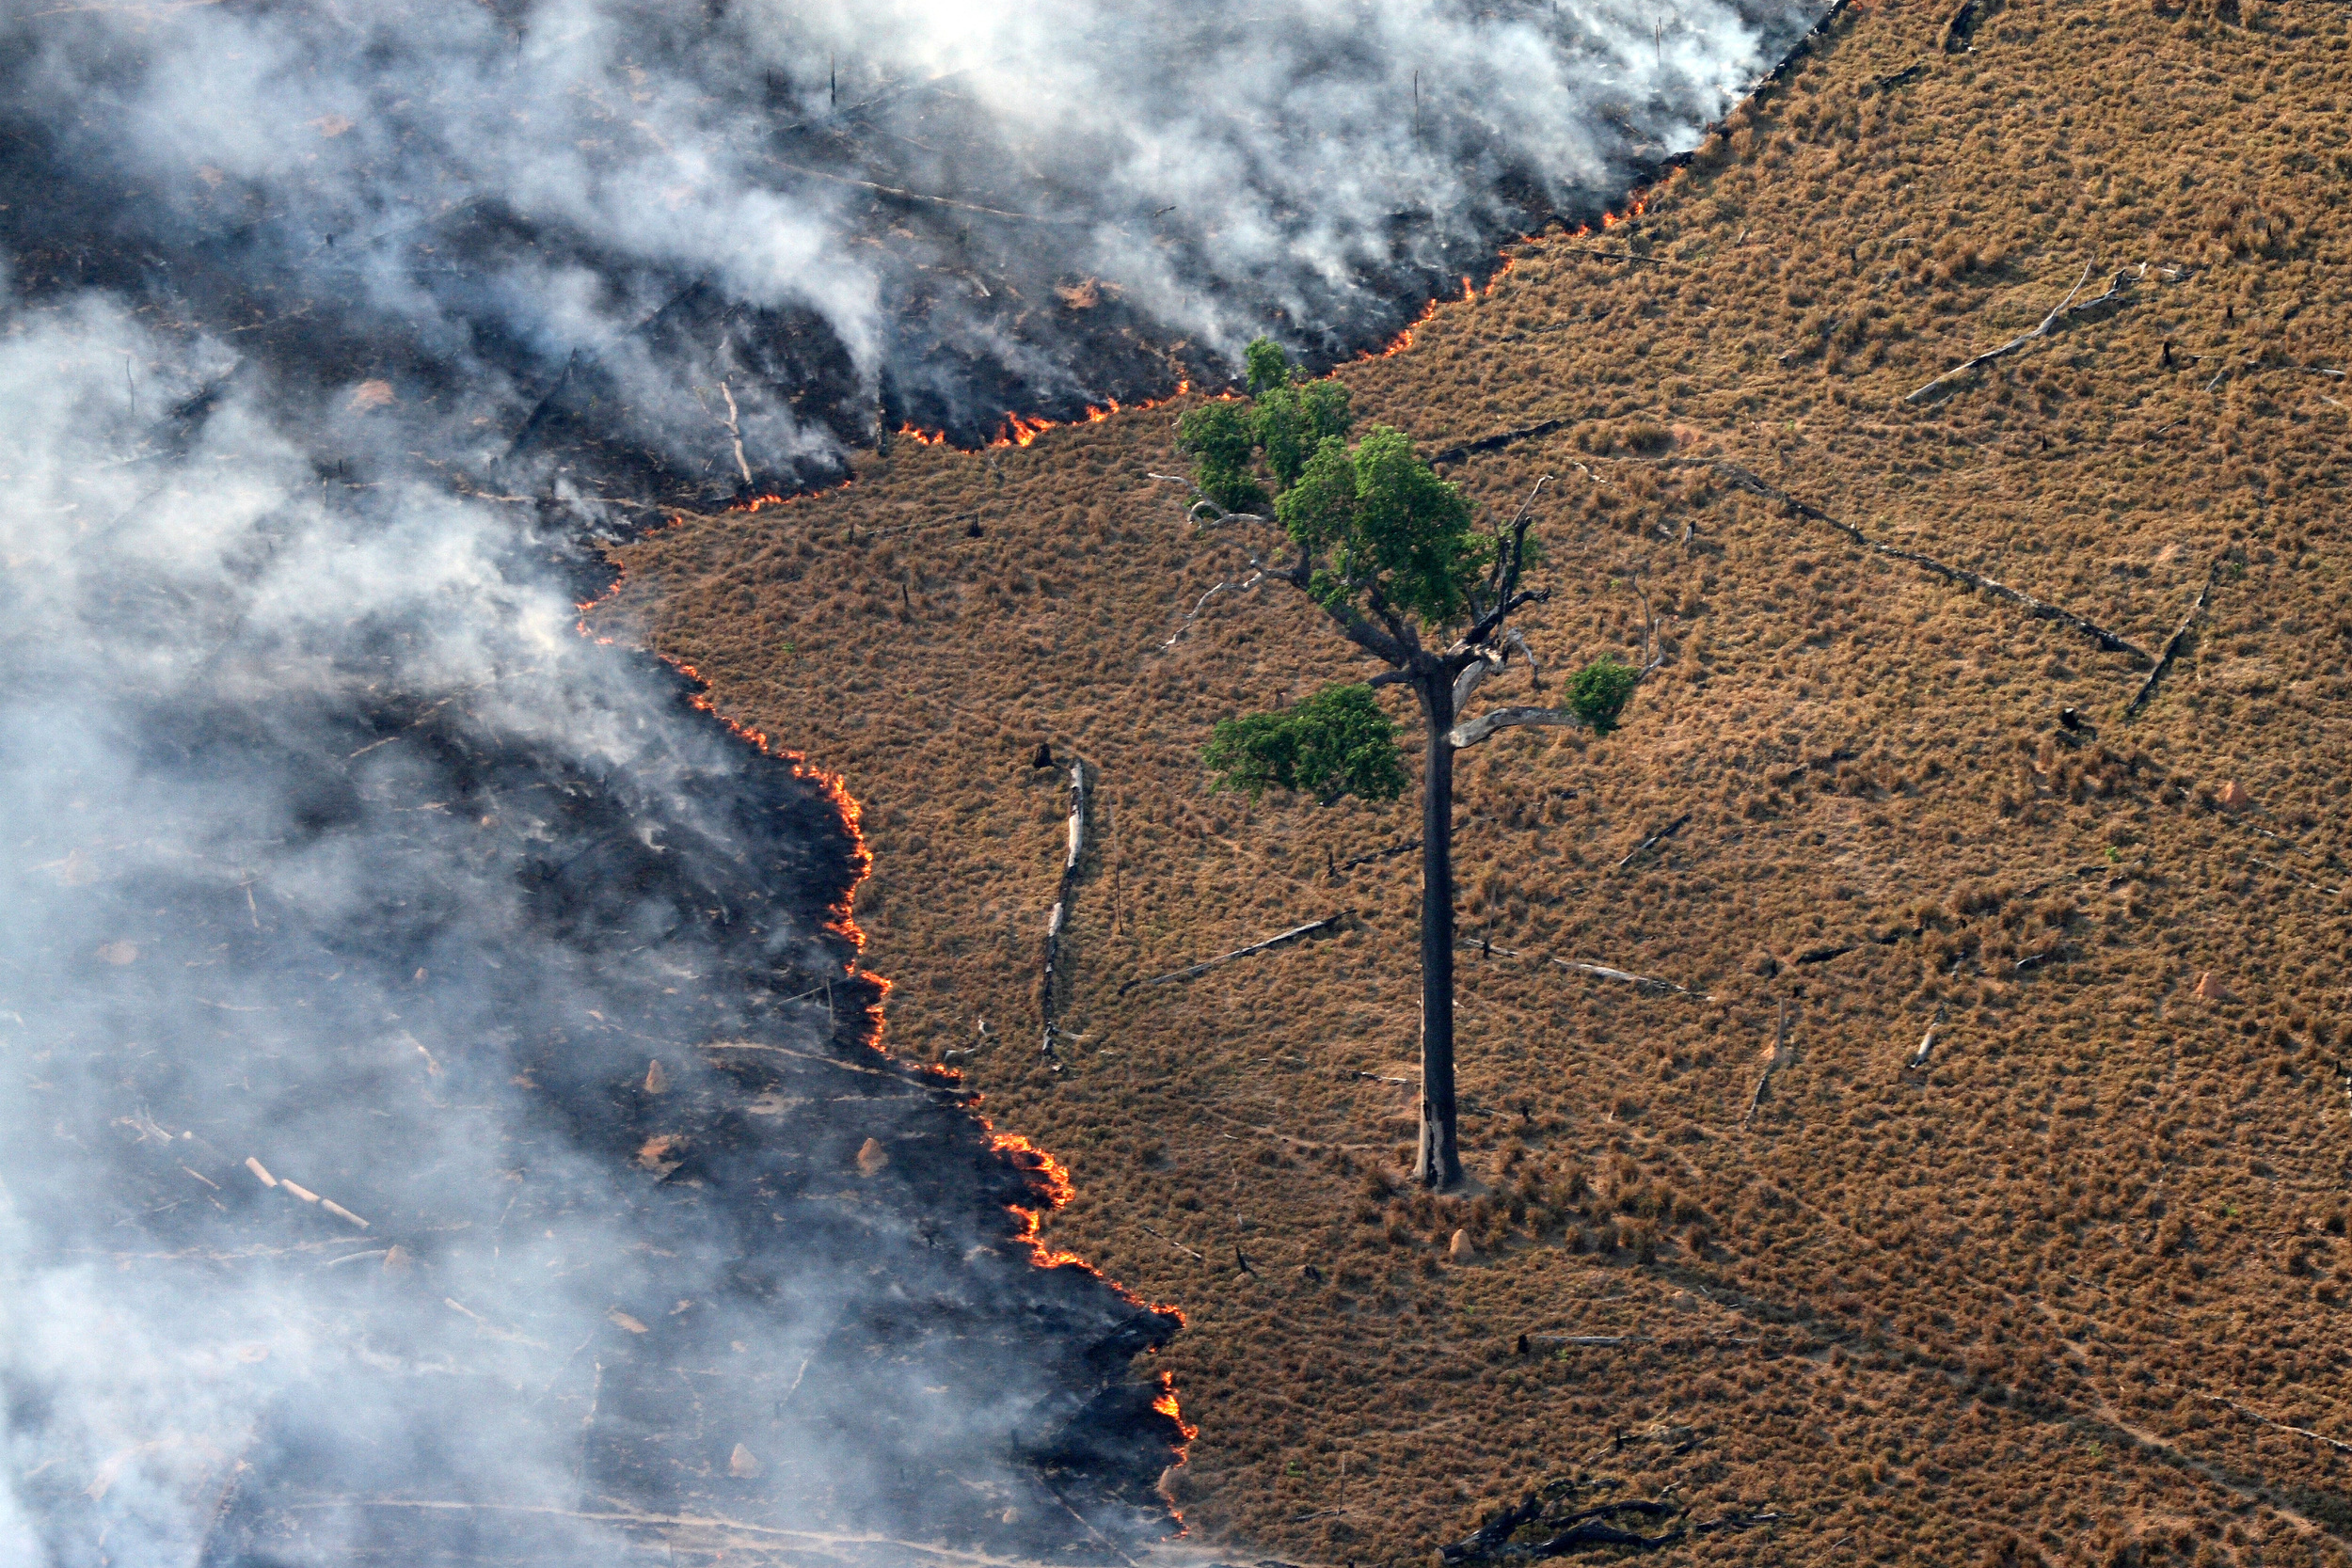 burning pasture in Amazon